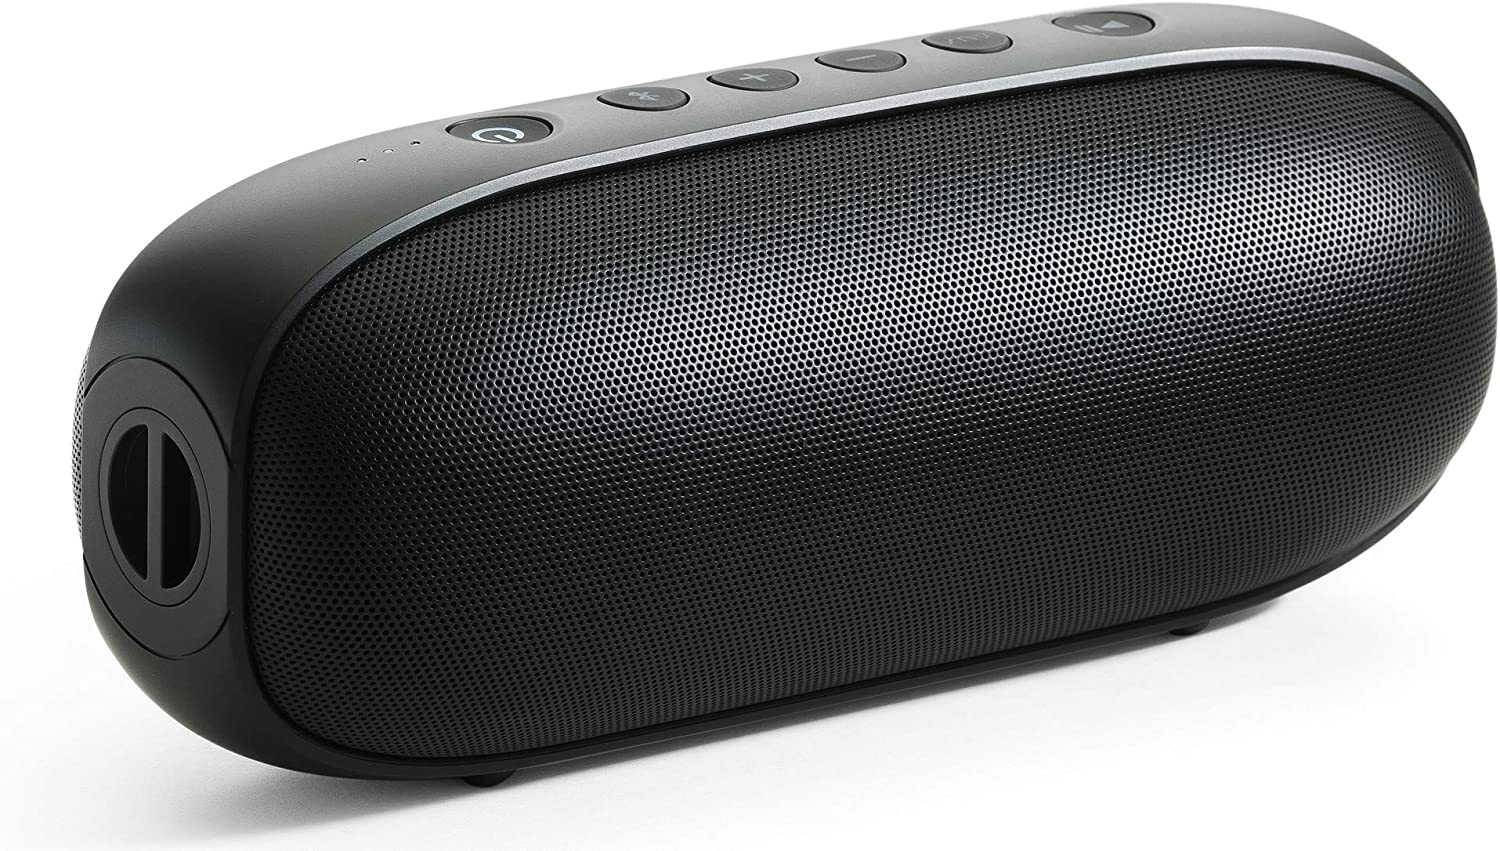 Black BT Wireless Speaker Audioengine 512 Portable Bluetooth Speaker